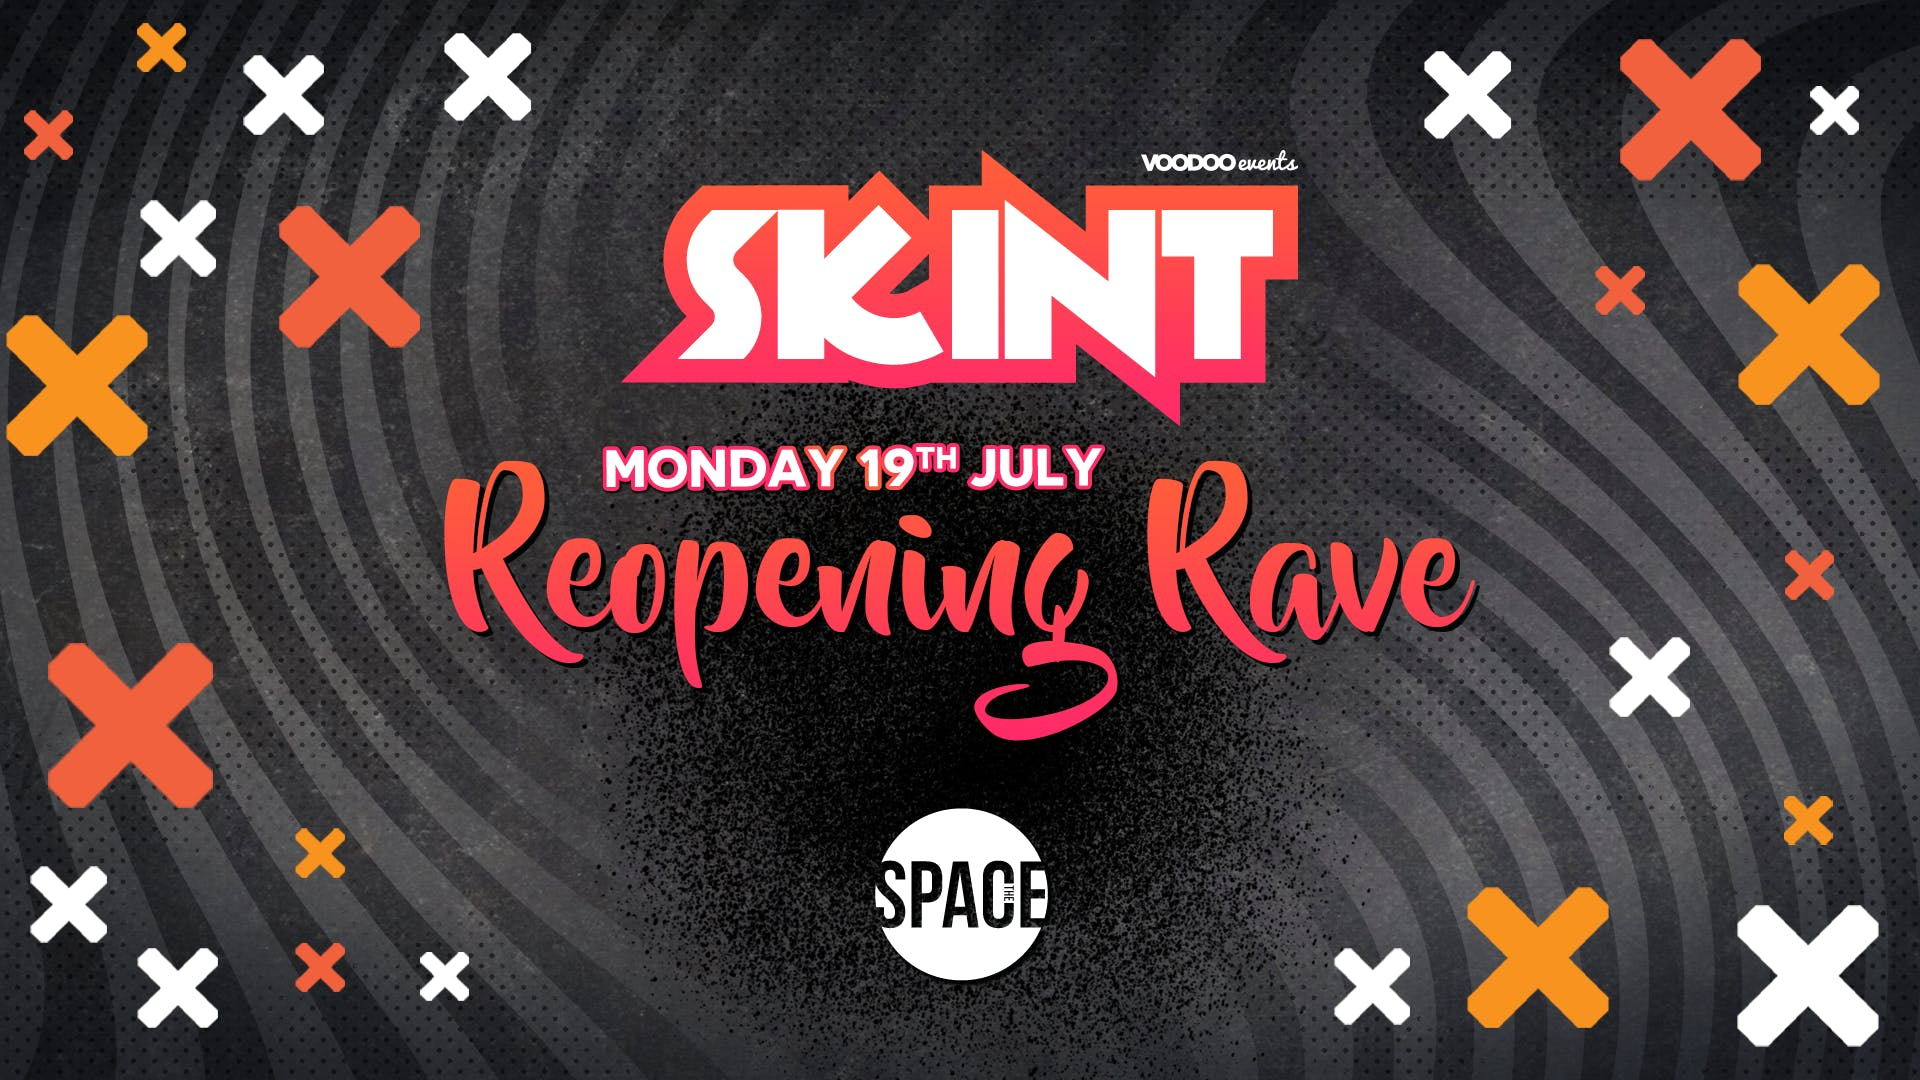 SKINT Reopening Rave 19th July